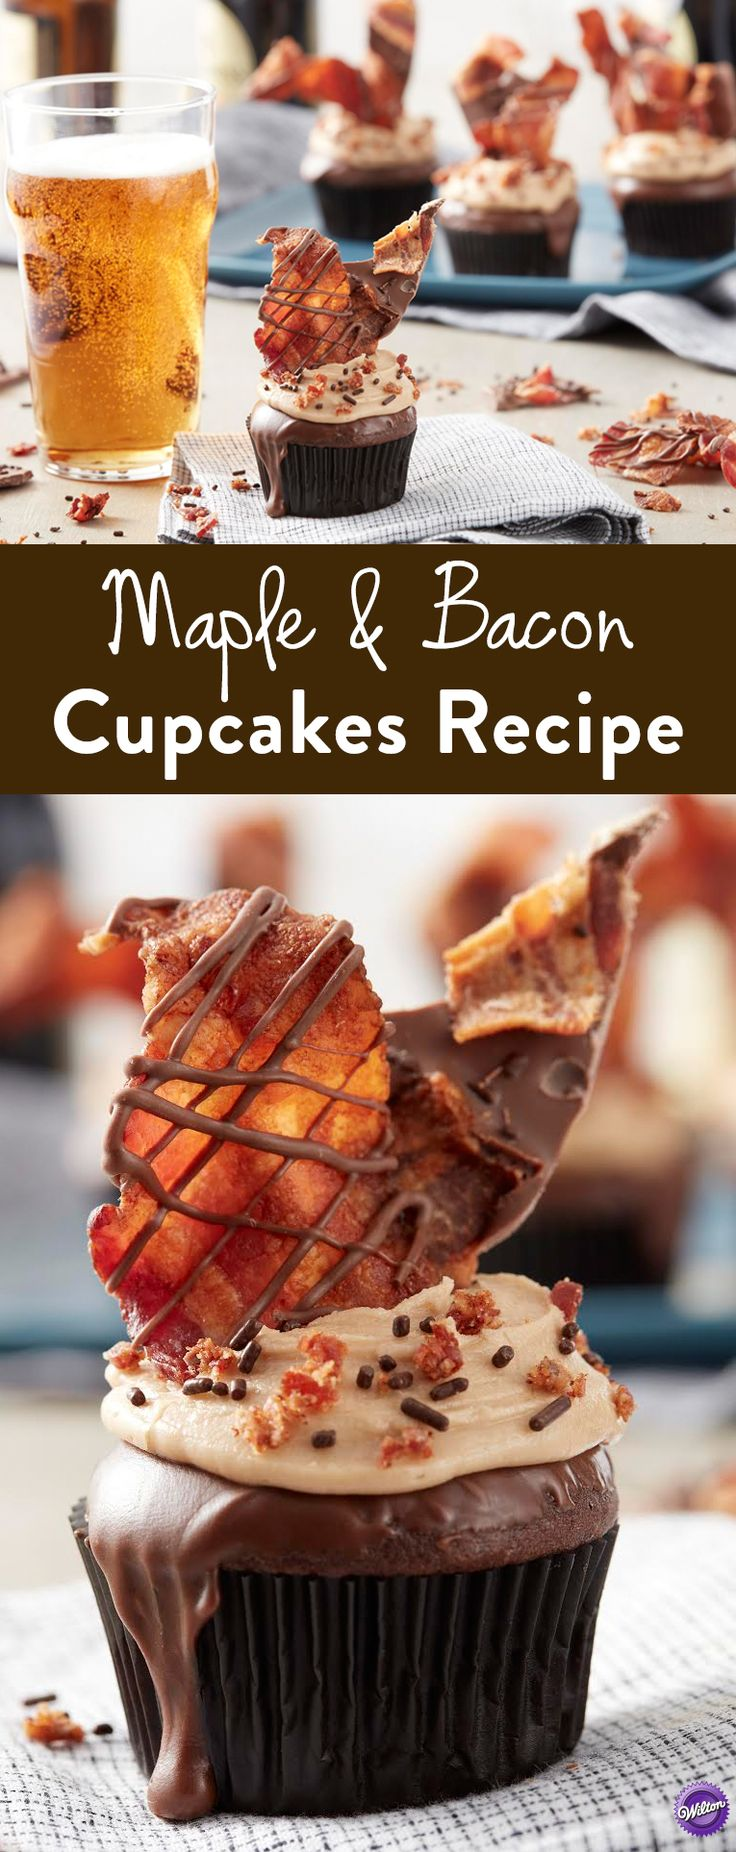 Maple and Bacon Cupcakes Recipe - These sweet and savory Maple Syrup Buttercream & Bacon Cupcakes are perfect for Father's Day, game day parties and more. Oh my, these look delicious!